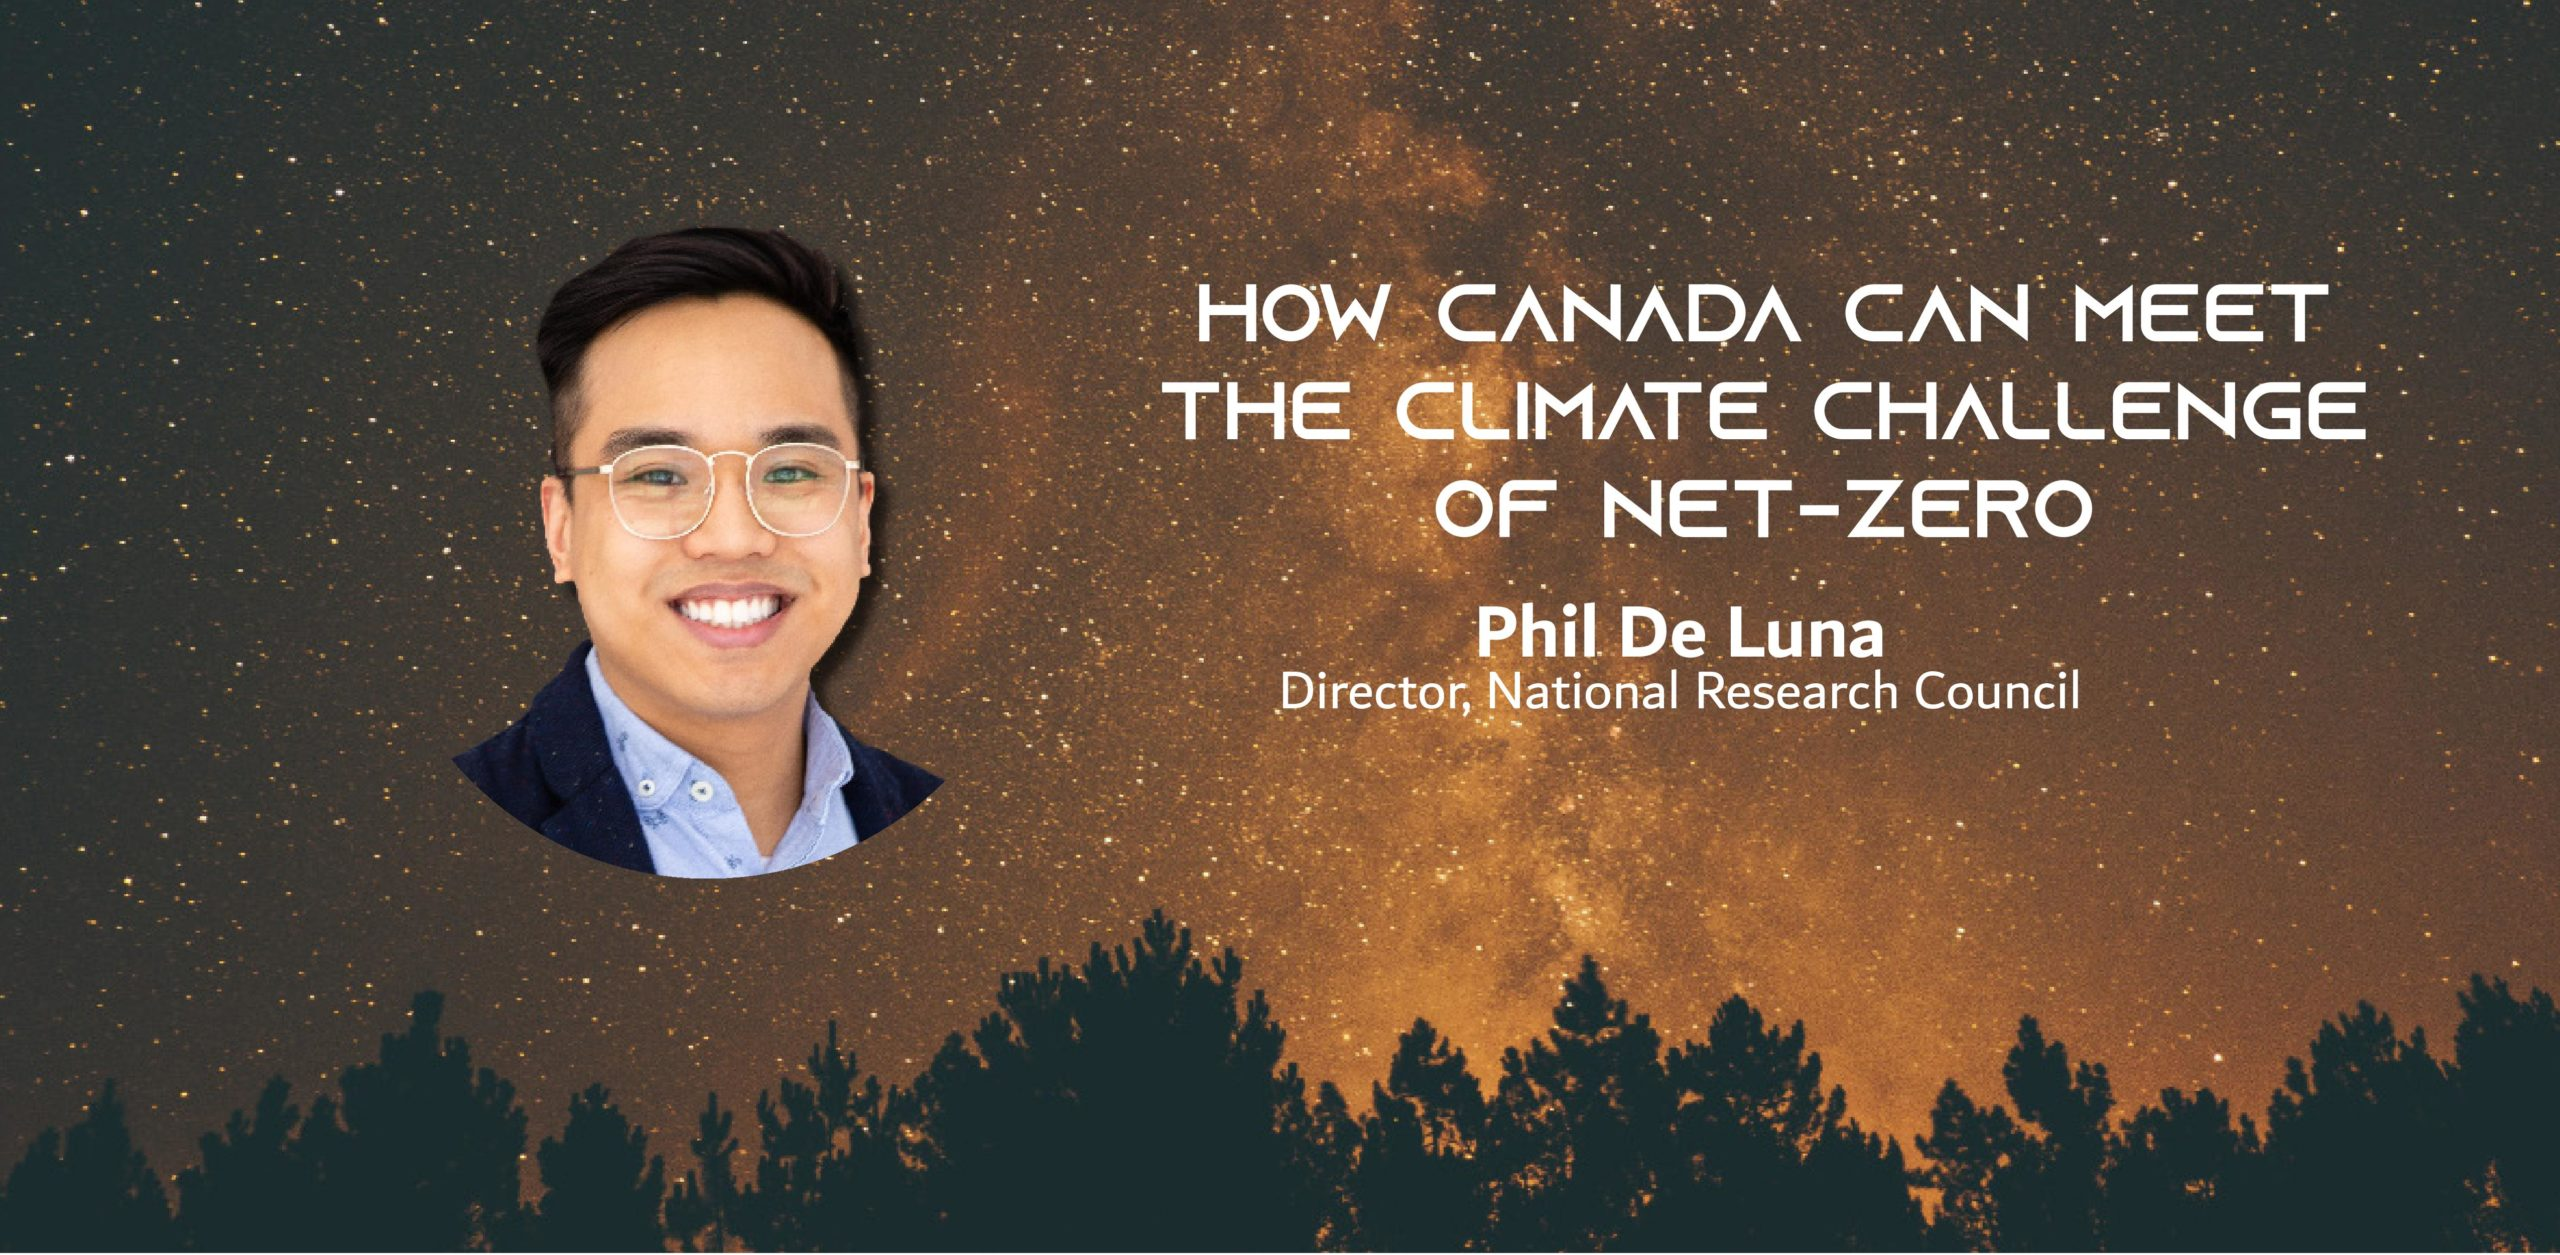 Photo of an Asian man on a night sky with the text: How Canada Can Meet the Climate Challenge of Net-Zero Phil De Luna Director, National Research Council